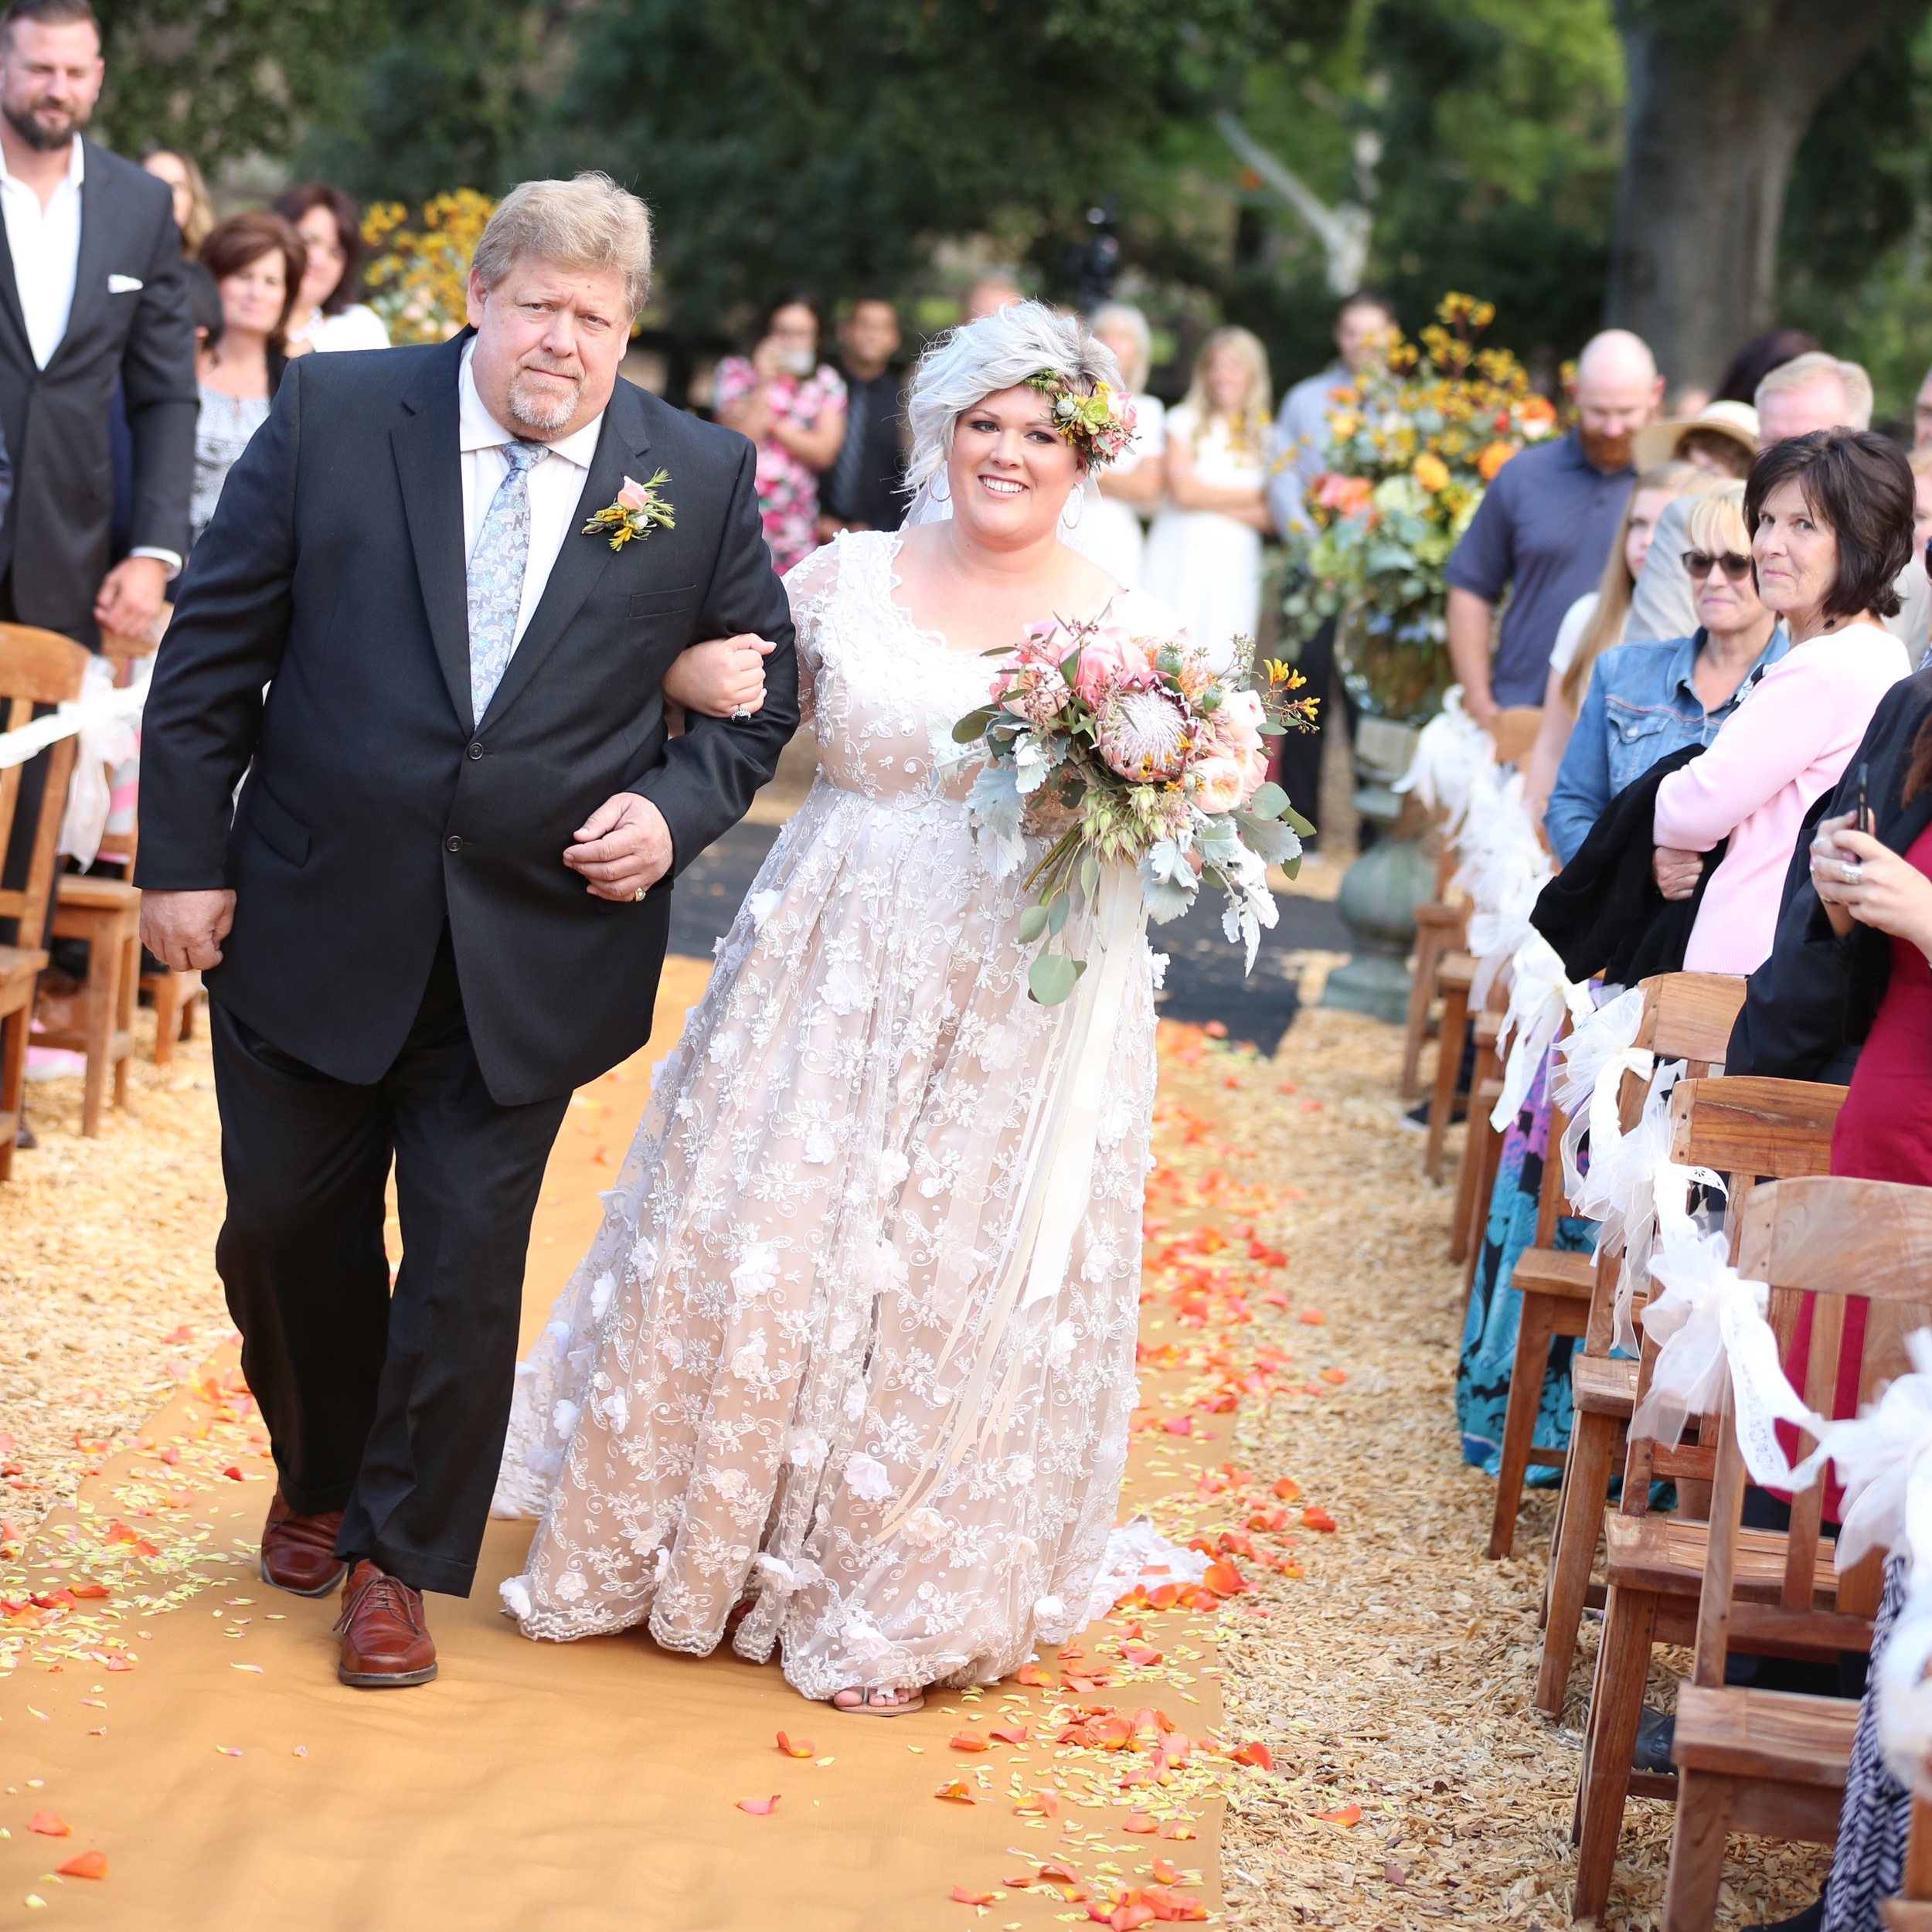 The father of the bride walking her down the aisle on her wedding day at Chateau Adare in the Temecula Valley.